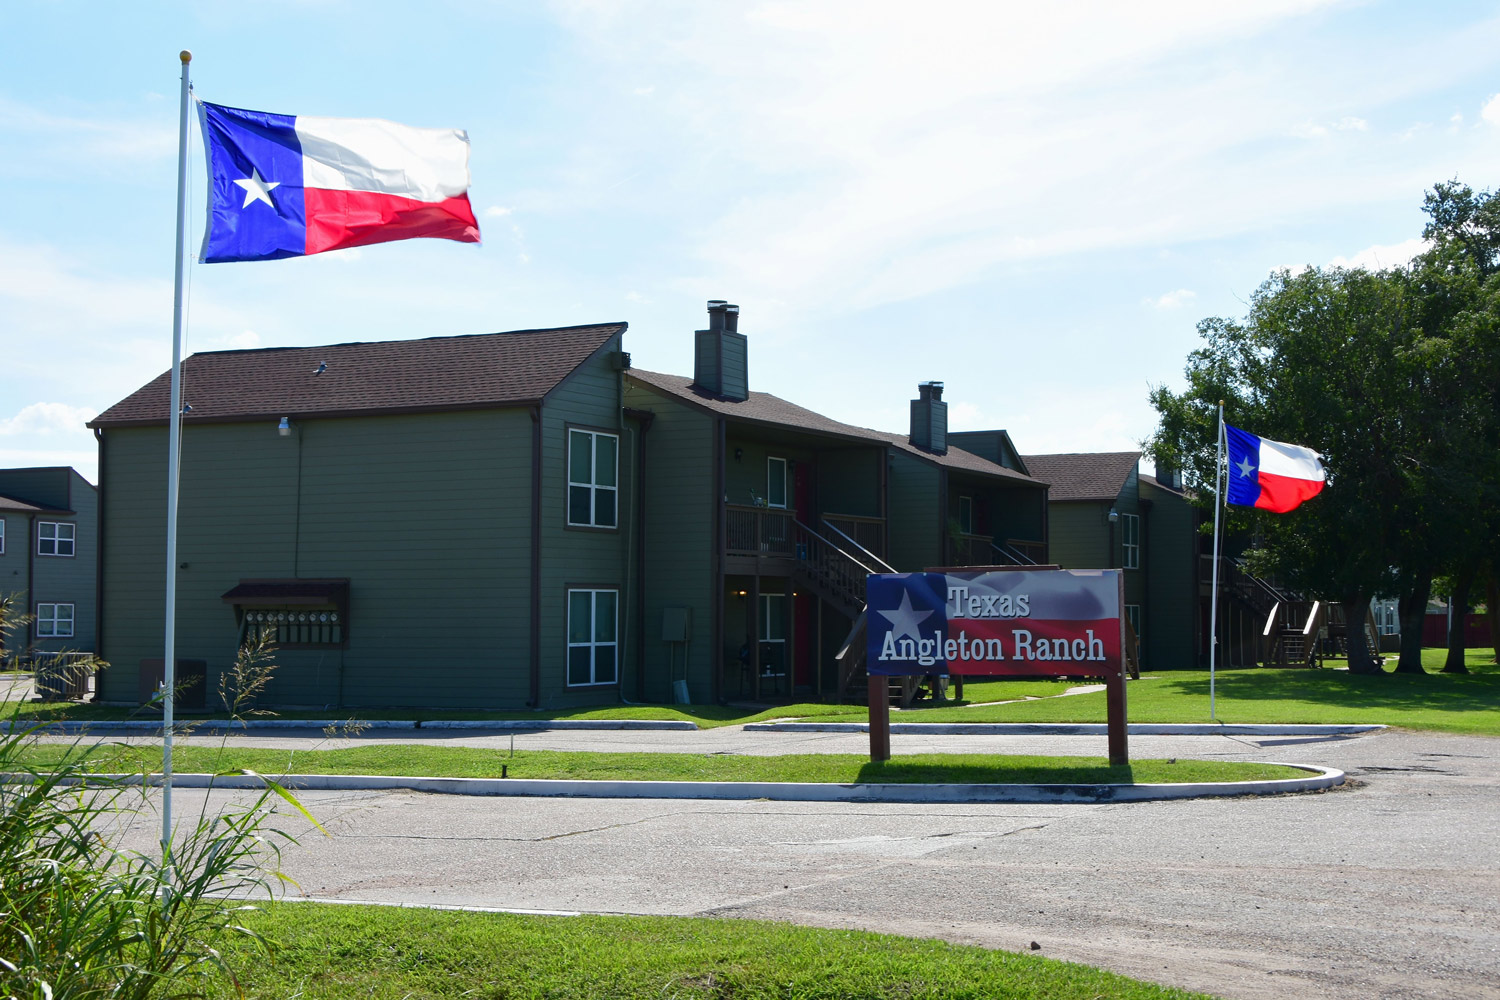 Welcome Signage at Texas Angleton Ranch Apartments in Angleton, TX